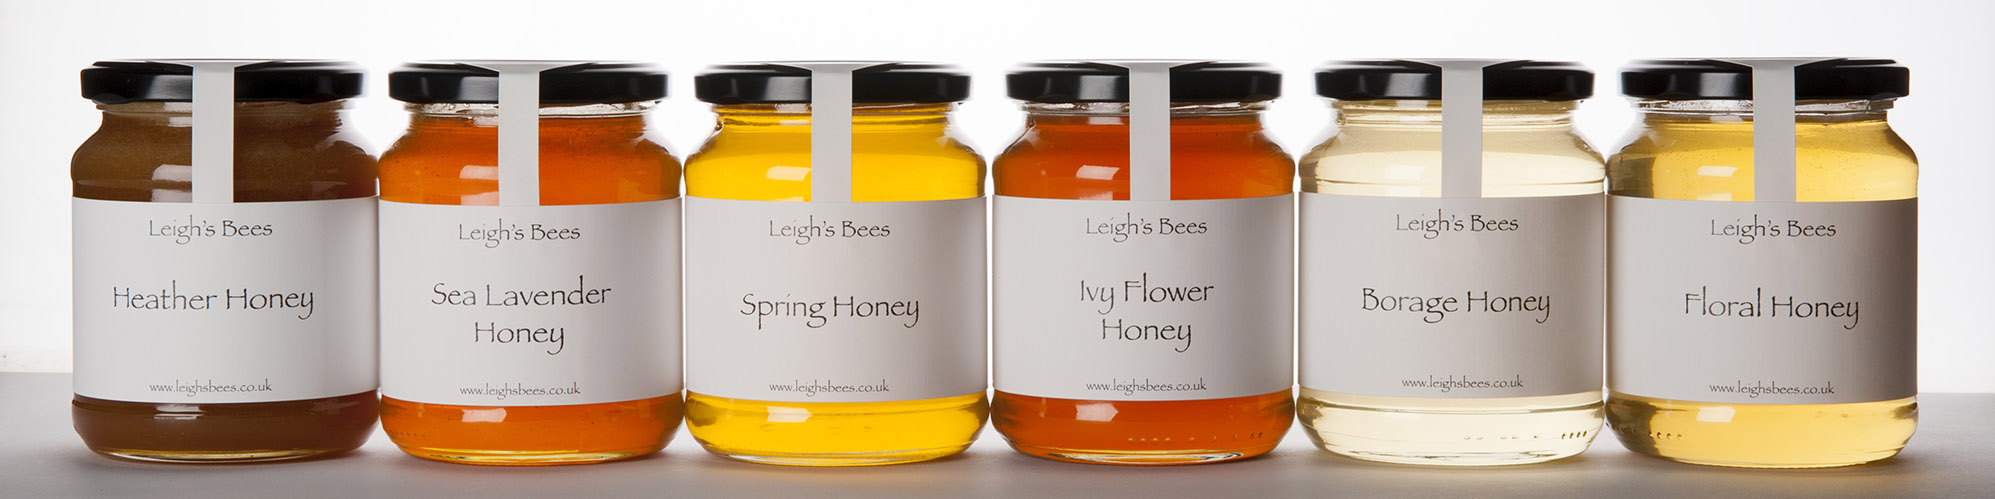 Leigh's Bees Natural Honey